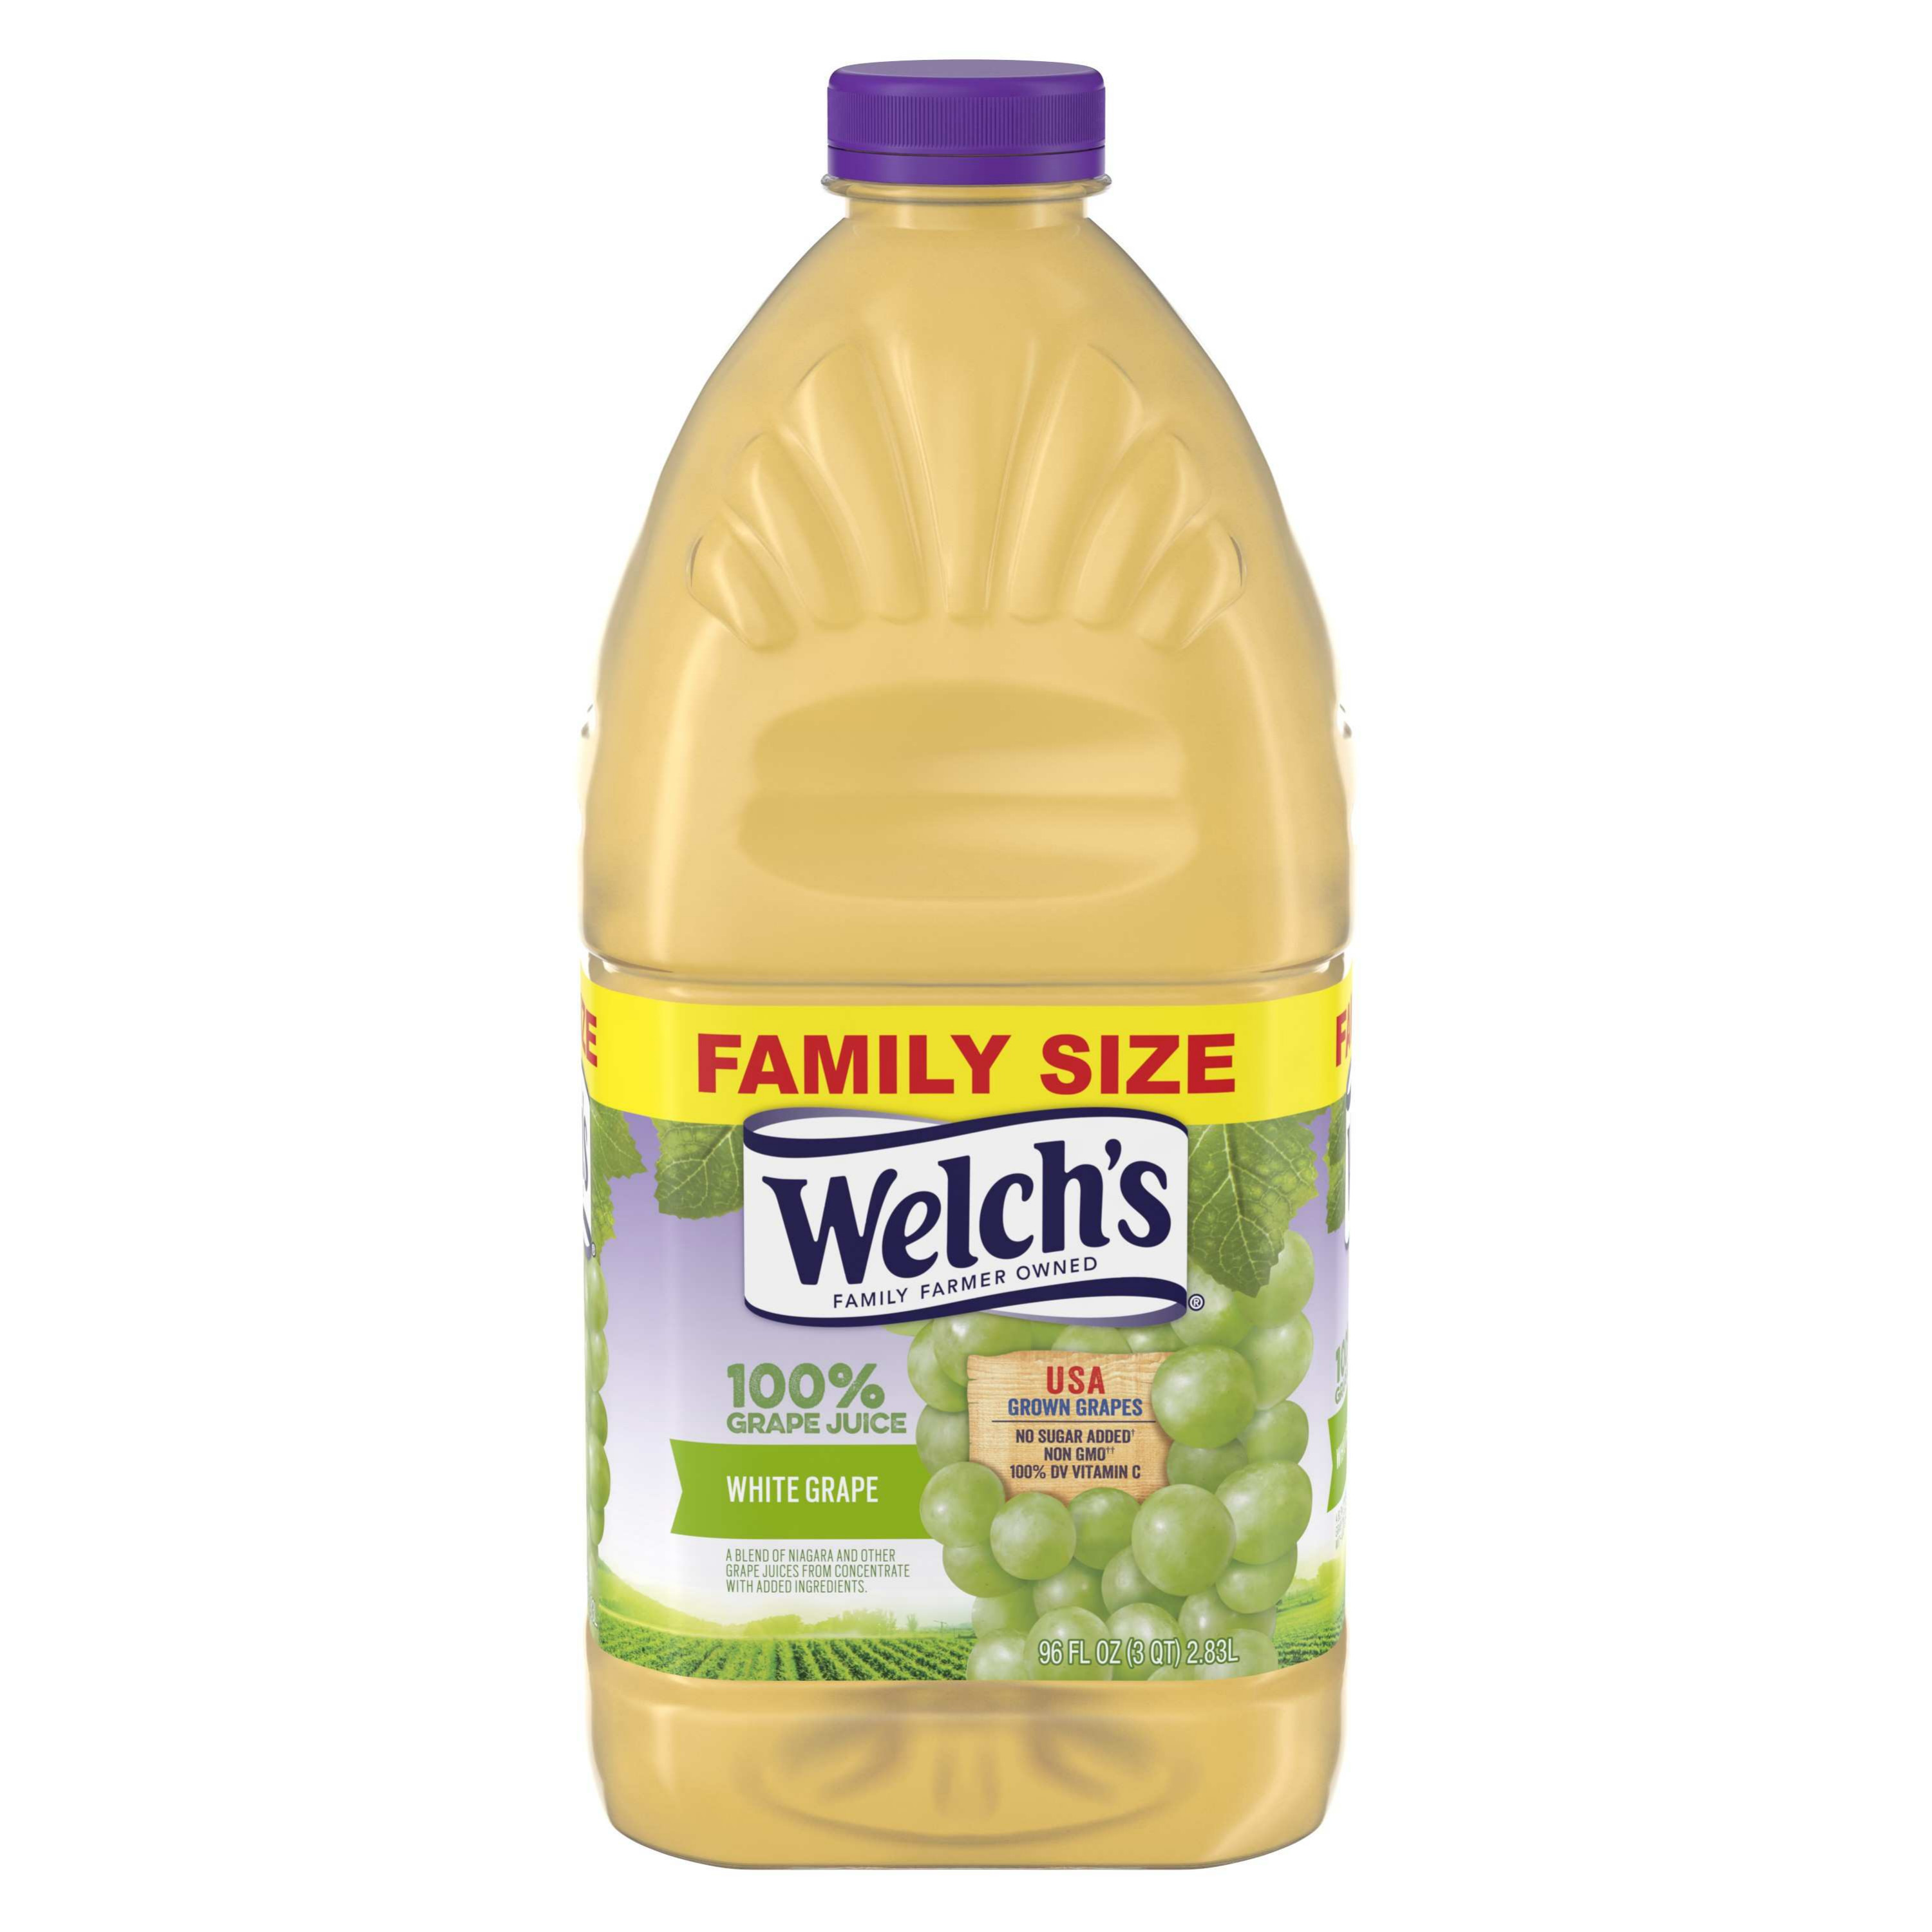 Welch's 100% Juice, White Grape, 96 Fl Oz, 1 Count